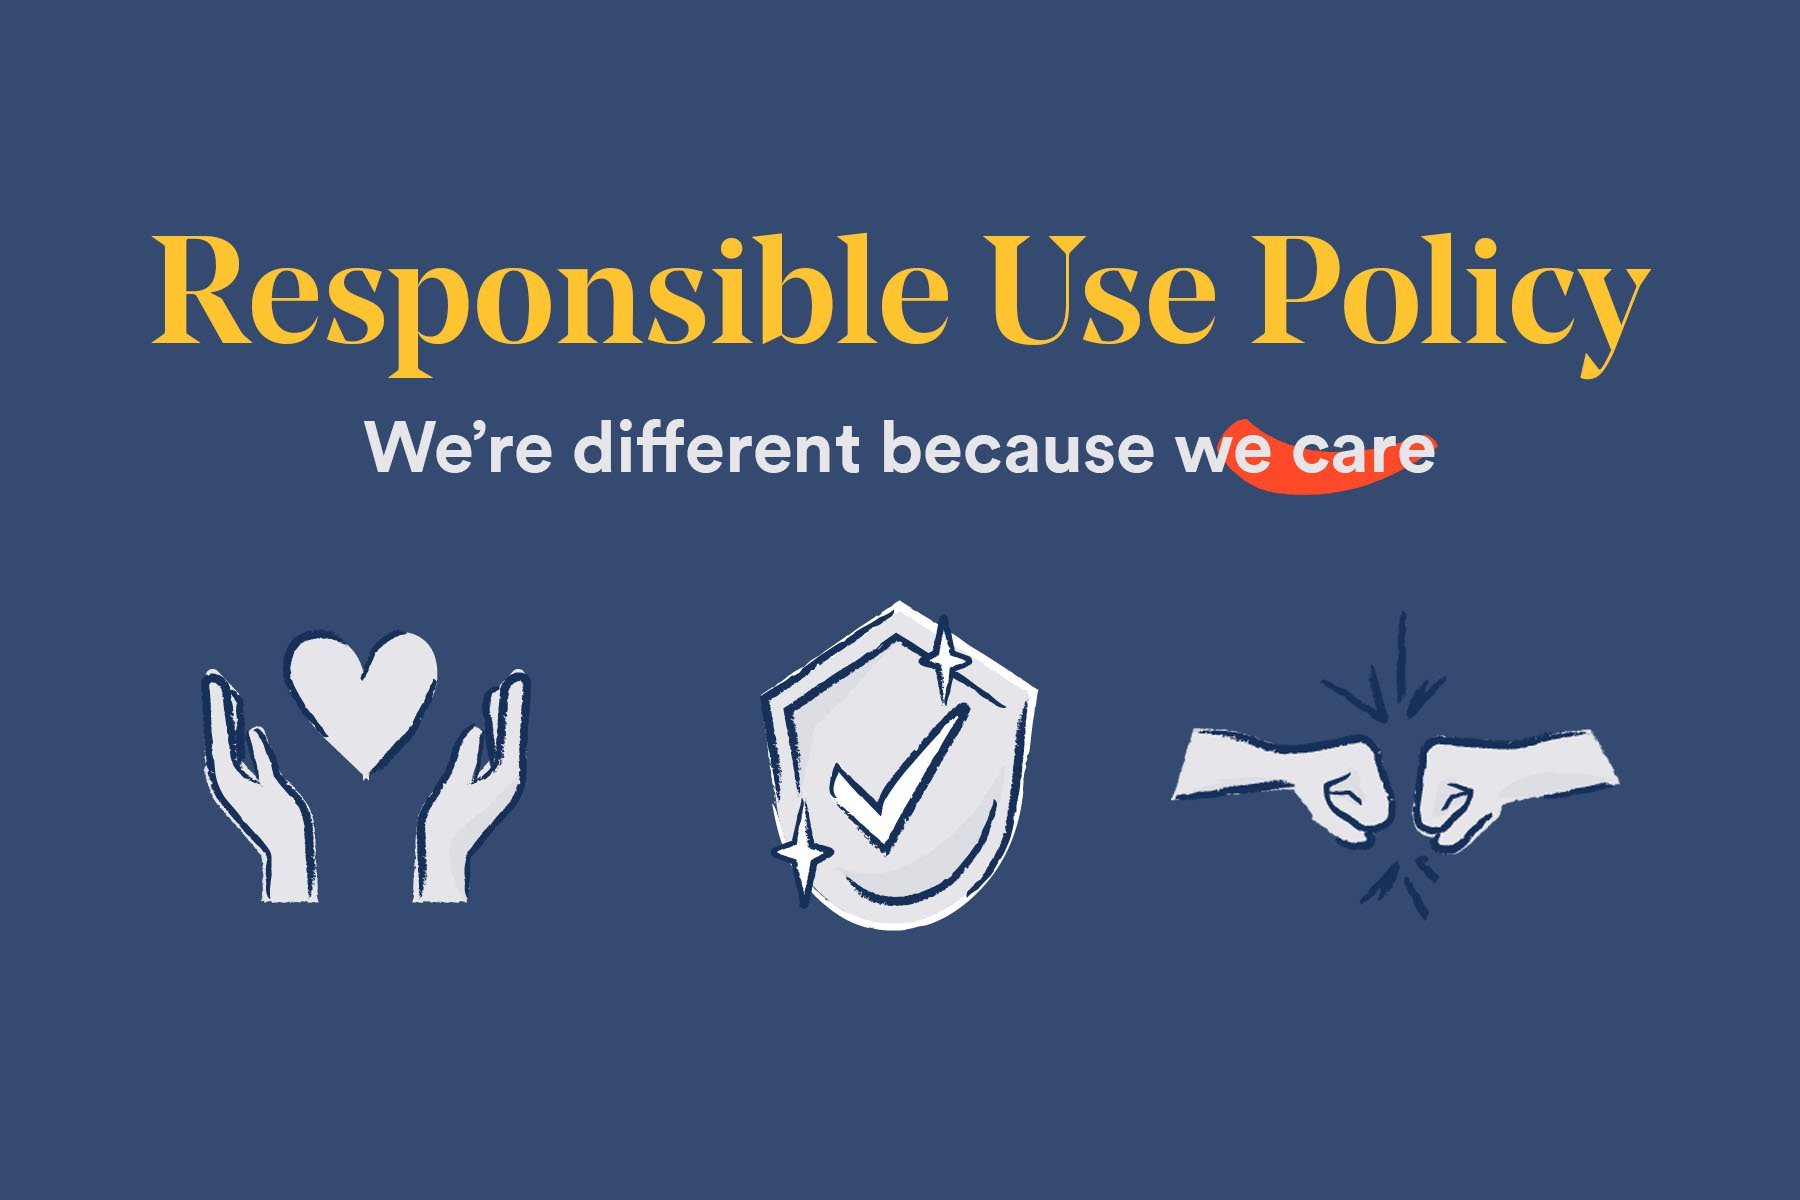 Our Unique Approach to a Responsible Use Policy